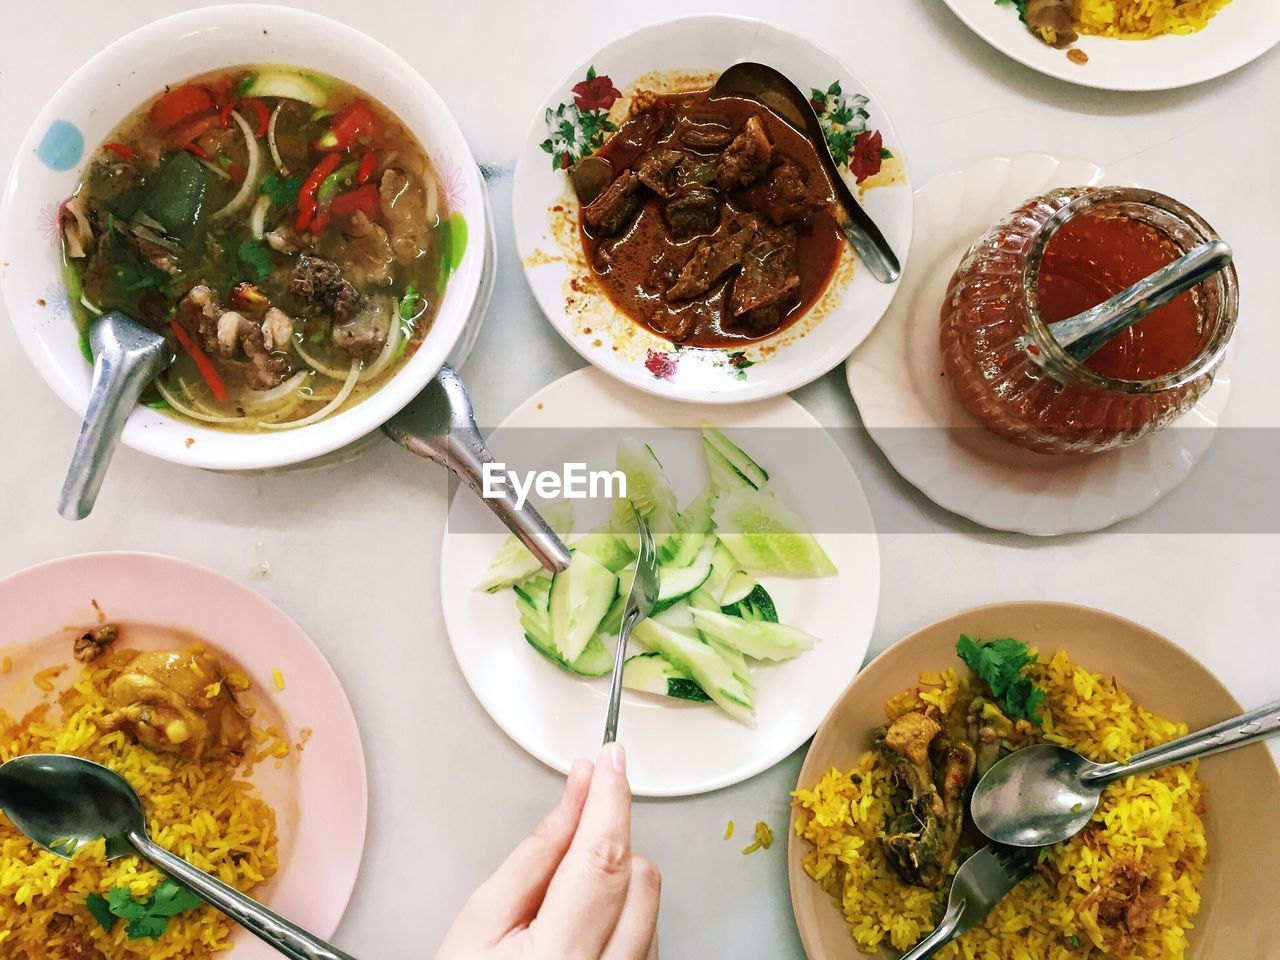 food, ready-to-eat, food and drink, freshness, table, bowl, healthy eating, eating utensil, plate, indoors, spoon, kitchen utensil, wellbeing, serving size, high angle view, meal, meat, directly above, soup, asian food, garnish